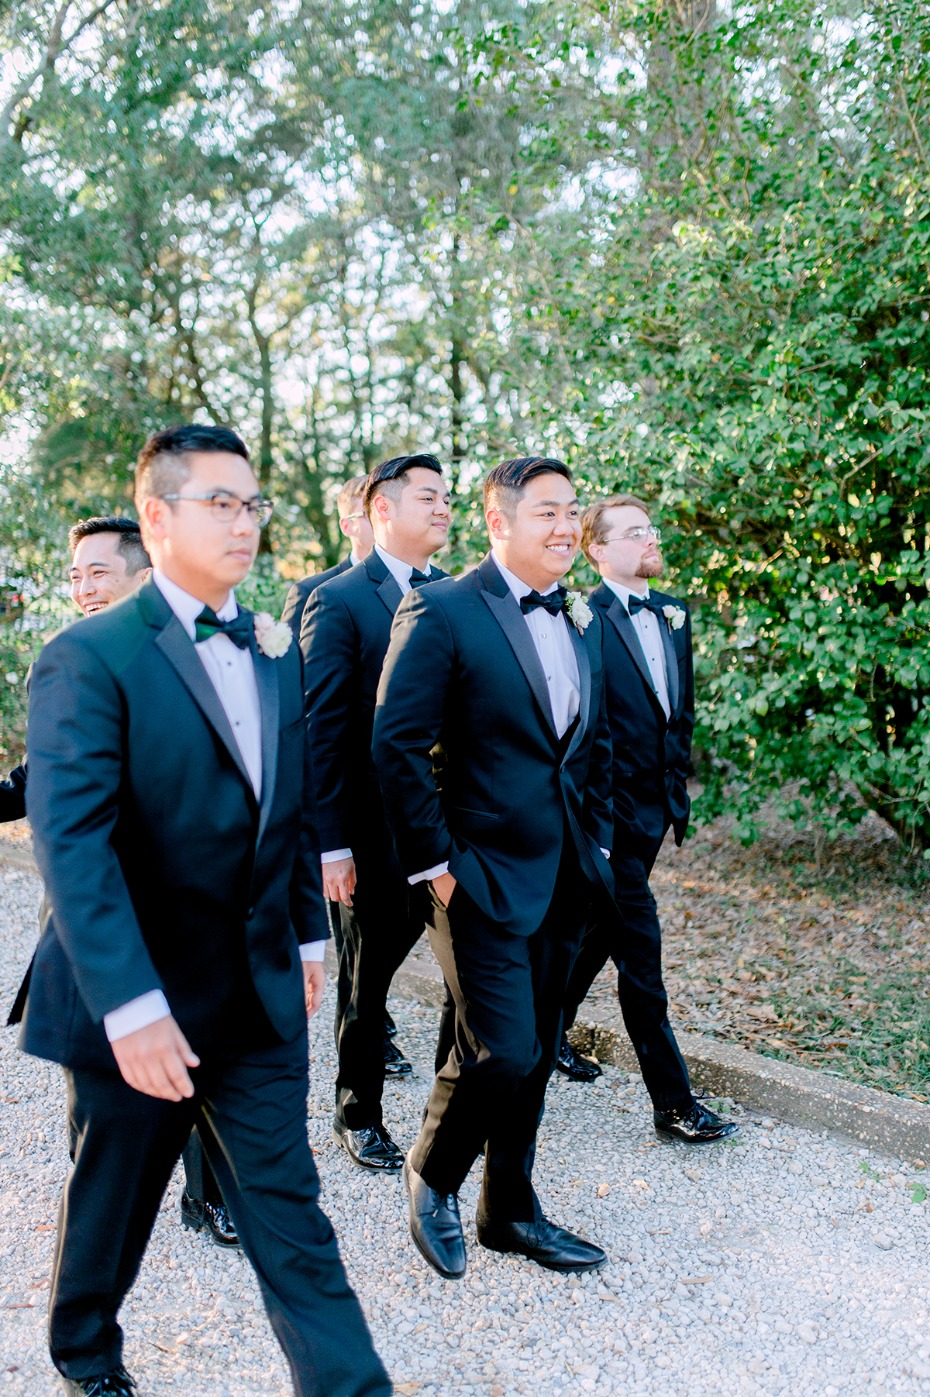 formal wedding style for the groom and his men